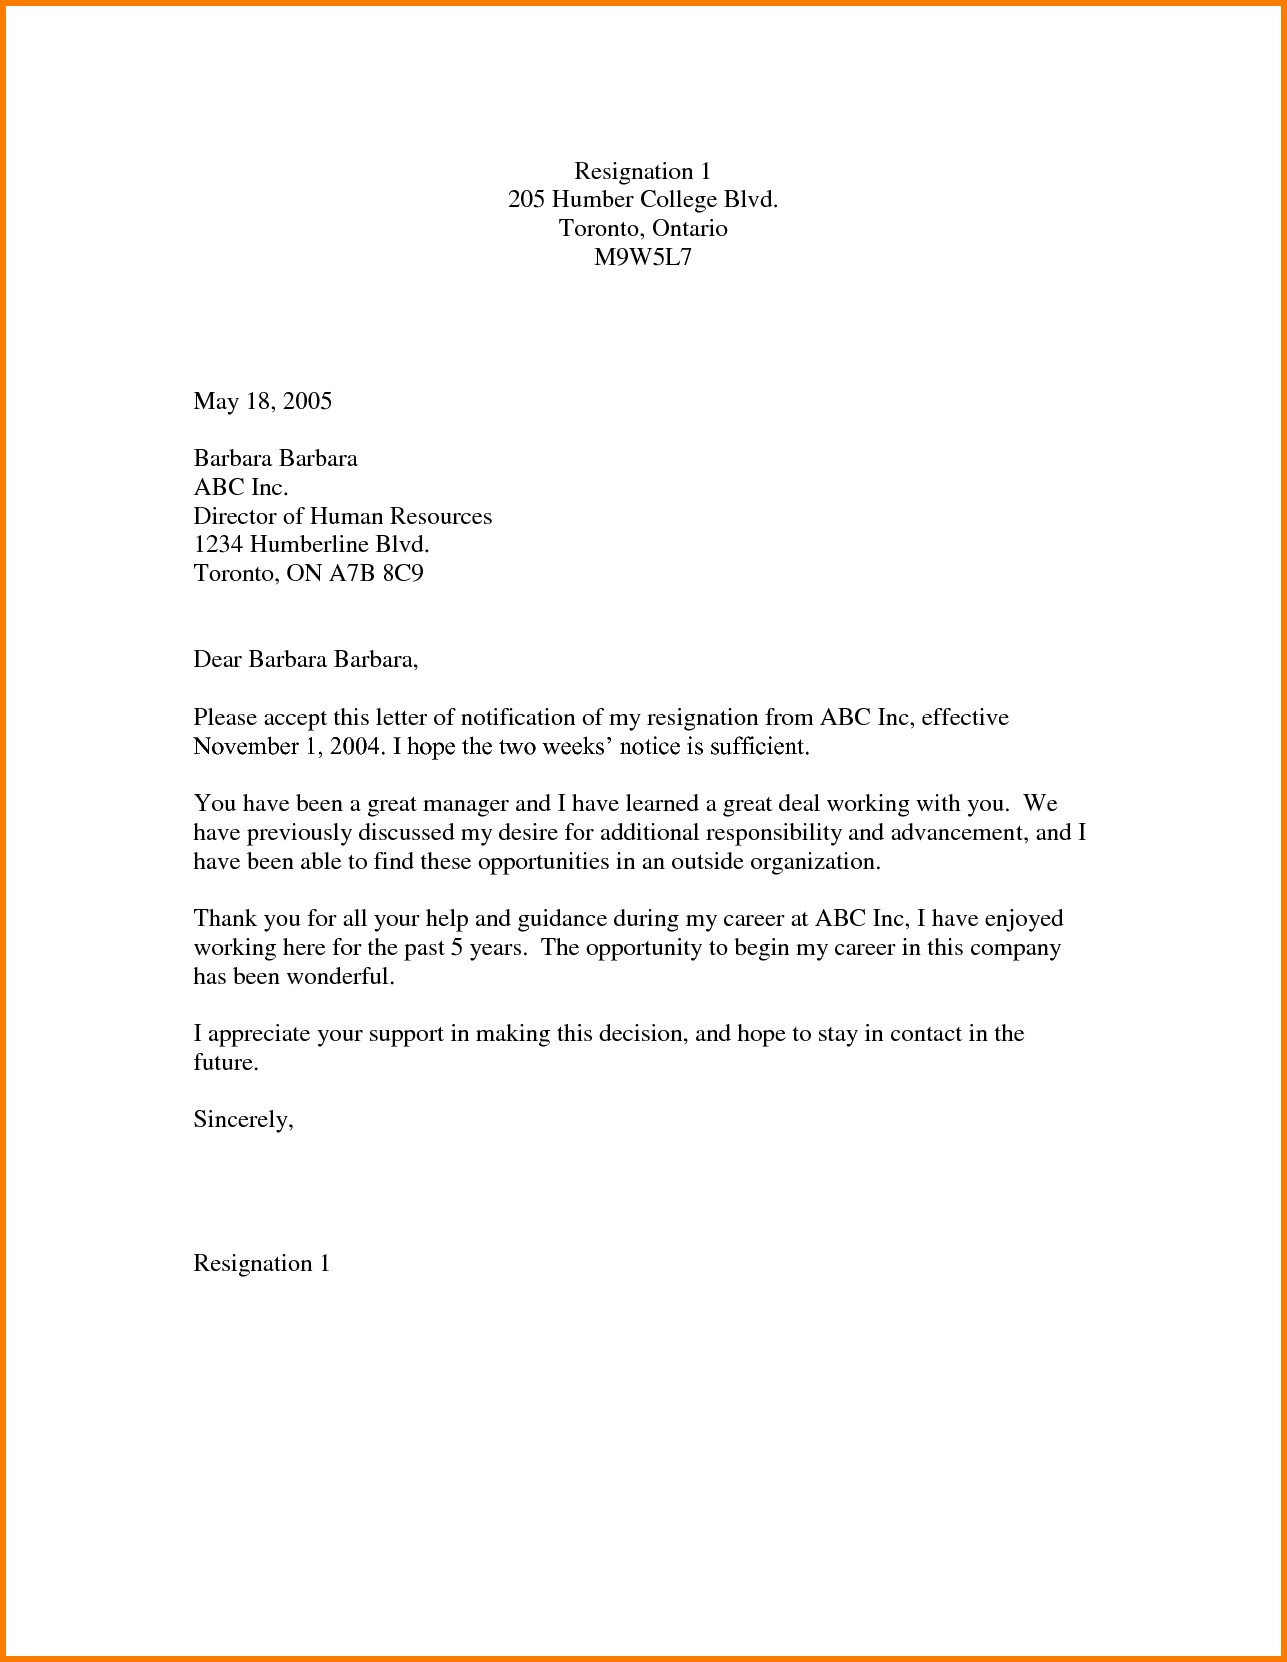 Cover Letter Template for Promotion - Promotion Cover Letter Template Job Promotion Cover Letter isale